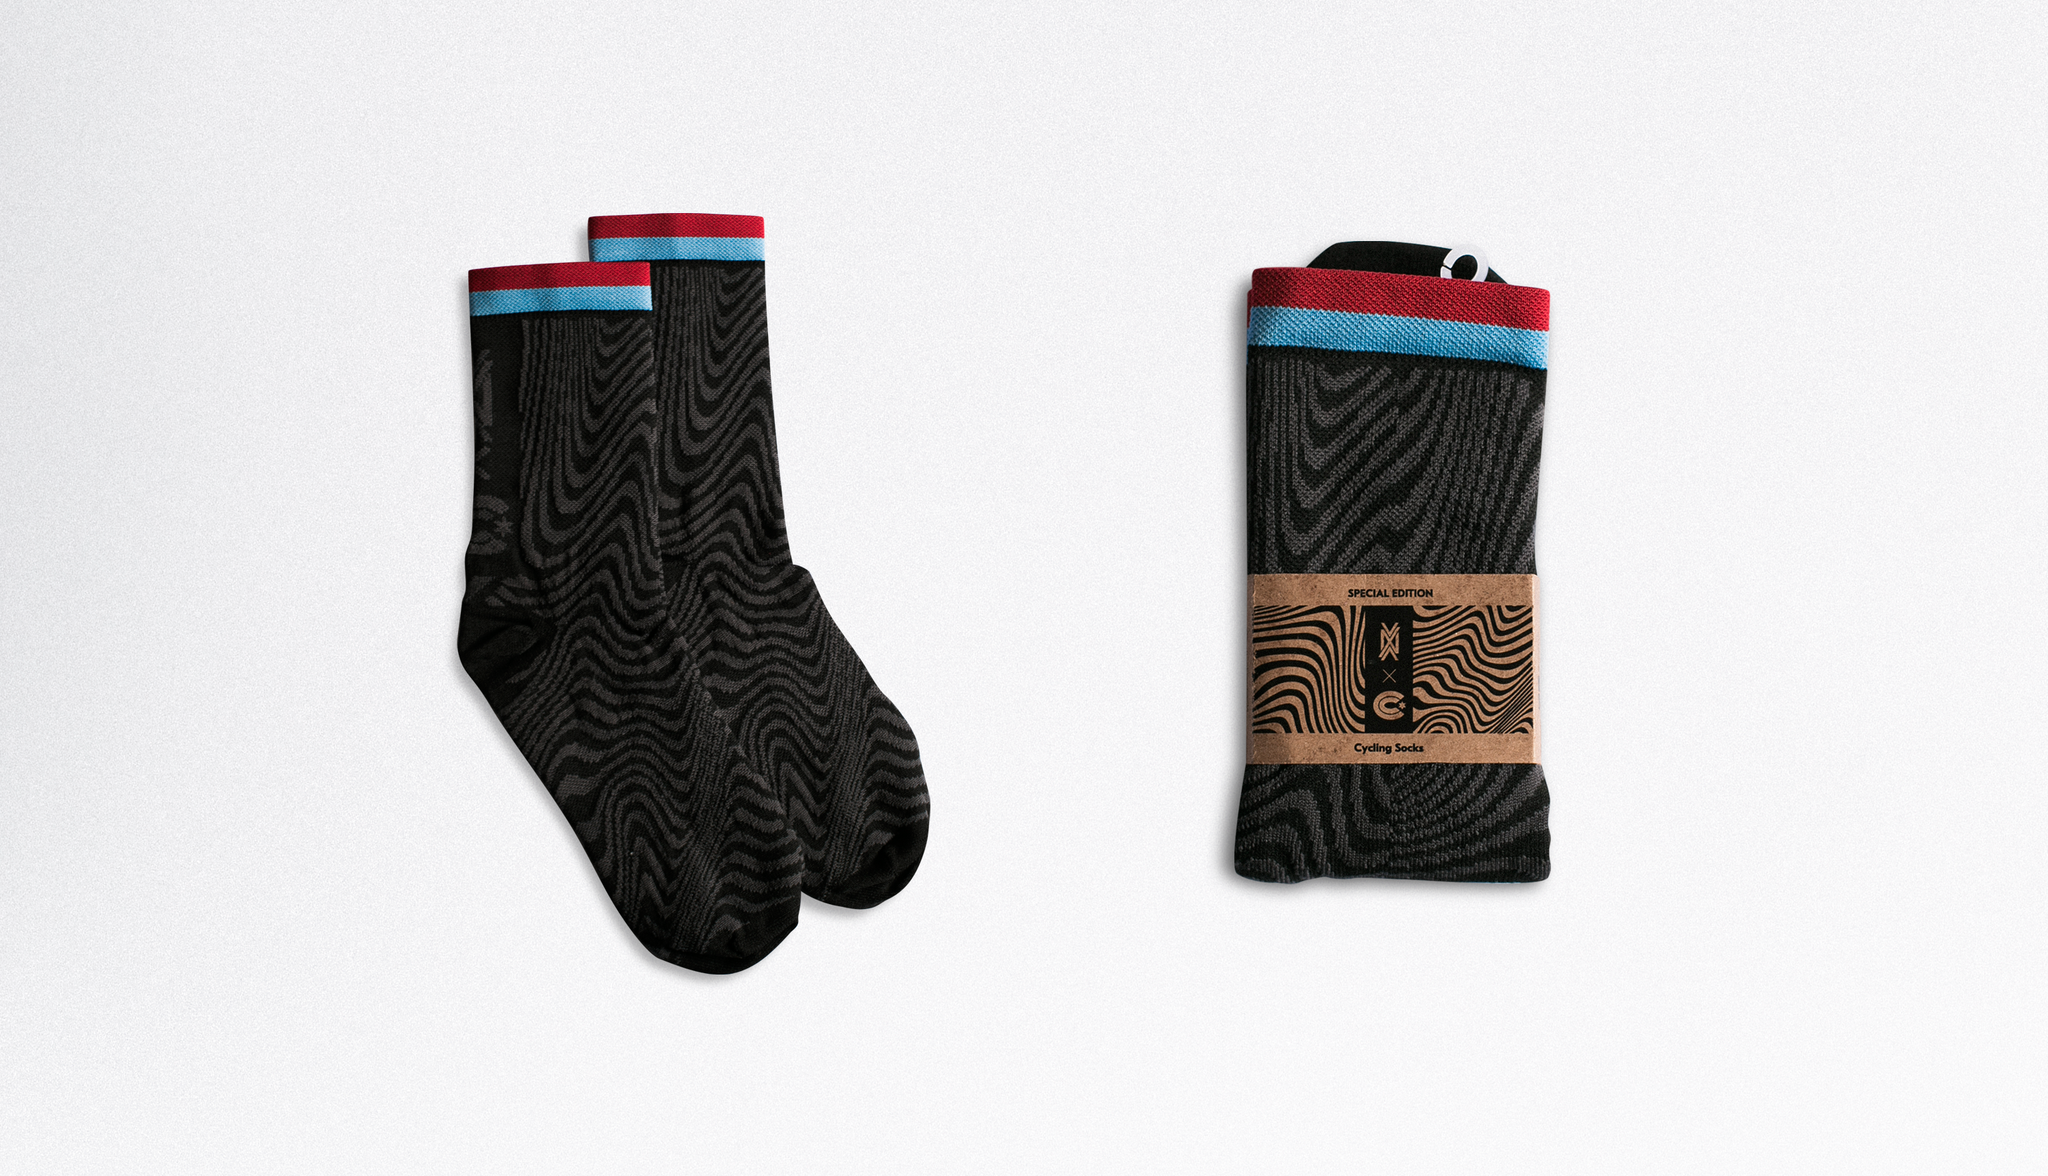 NVAYRK X CC Cycling Socks Vol. 2 (Limited Edition)